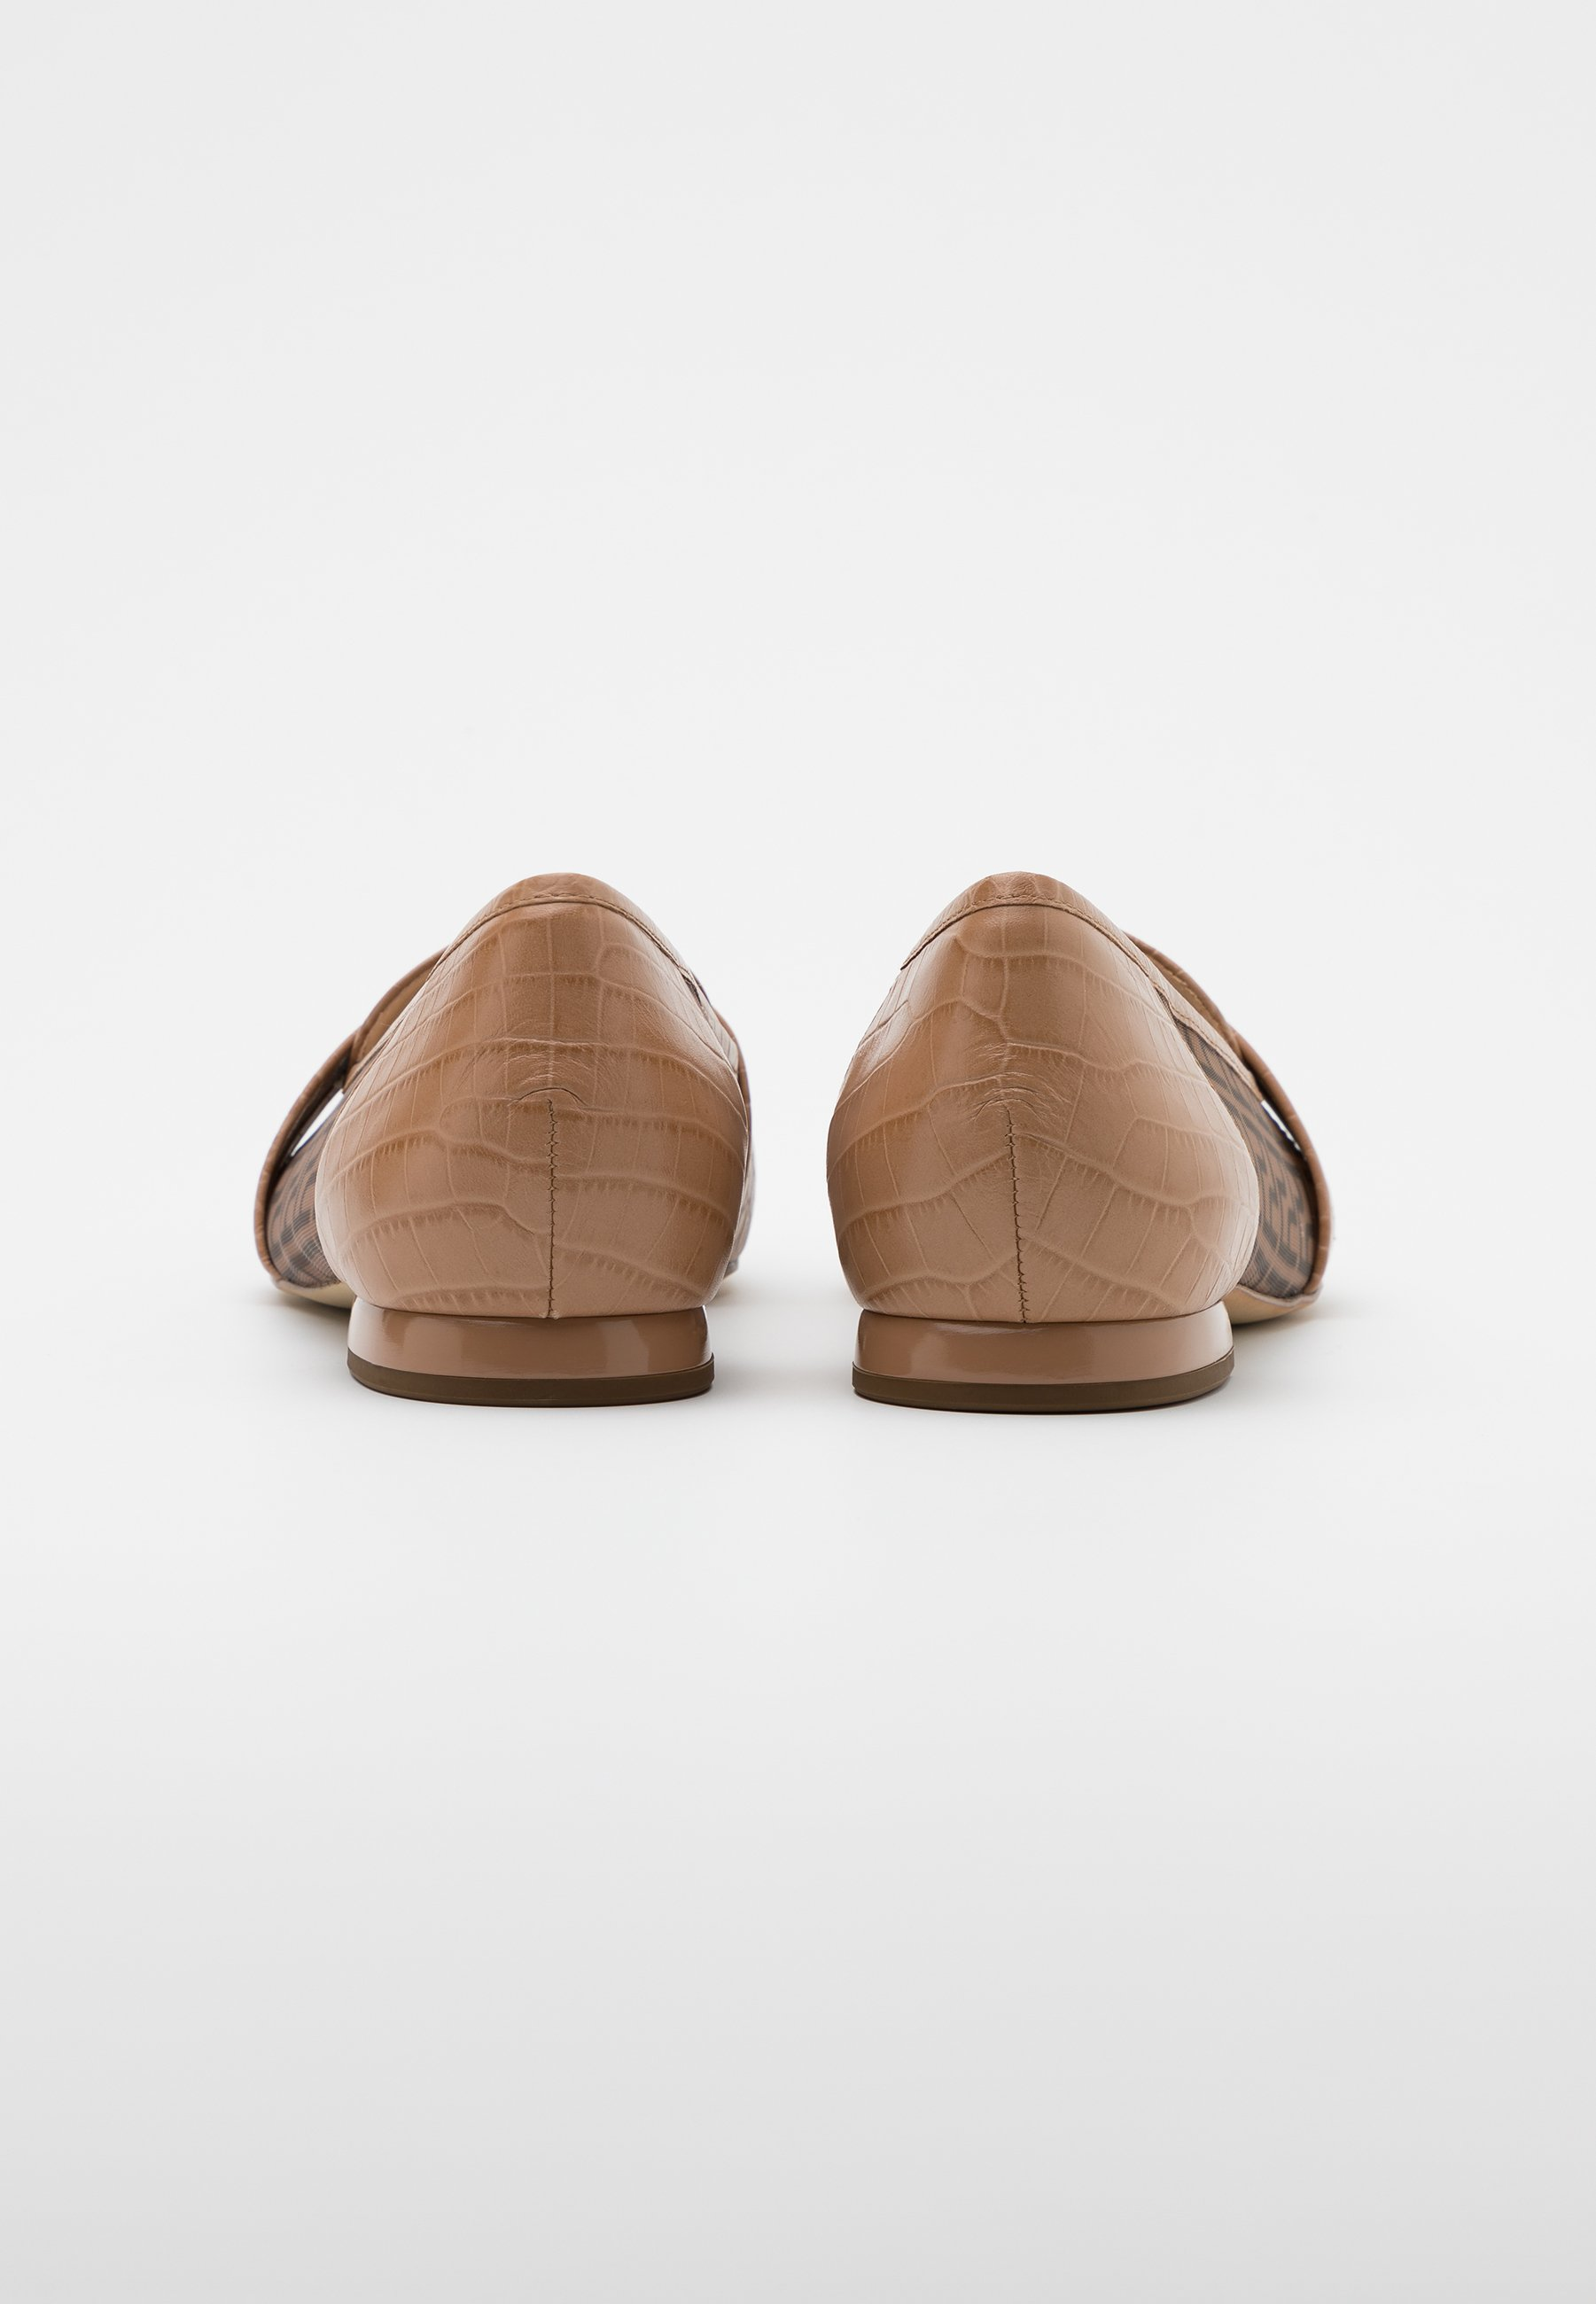 Fashionable Outlet Store Women's Shoes Högl AMBER Slip-ons nude xs9XUUpEd FDCjSM19i